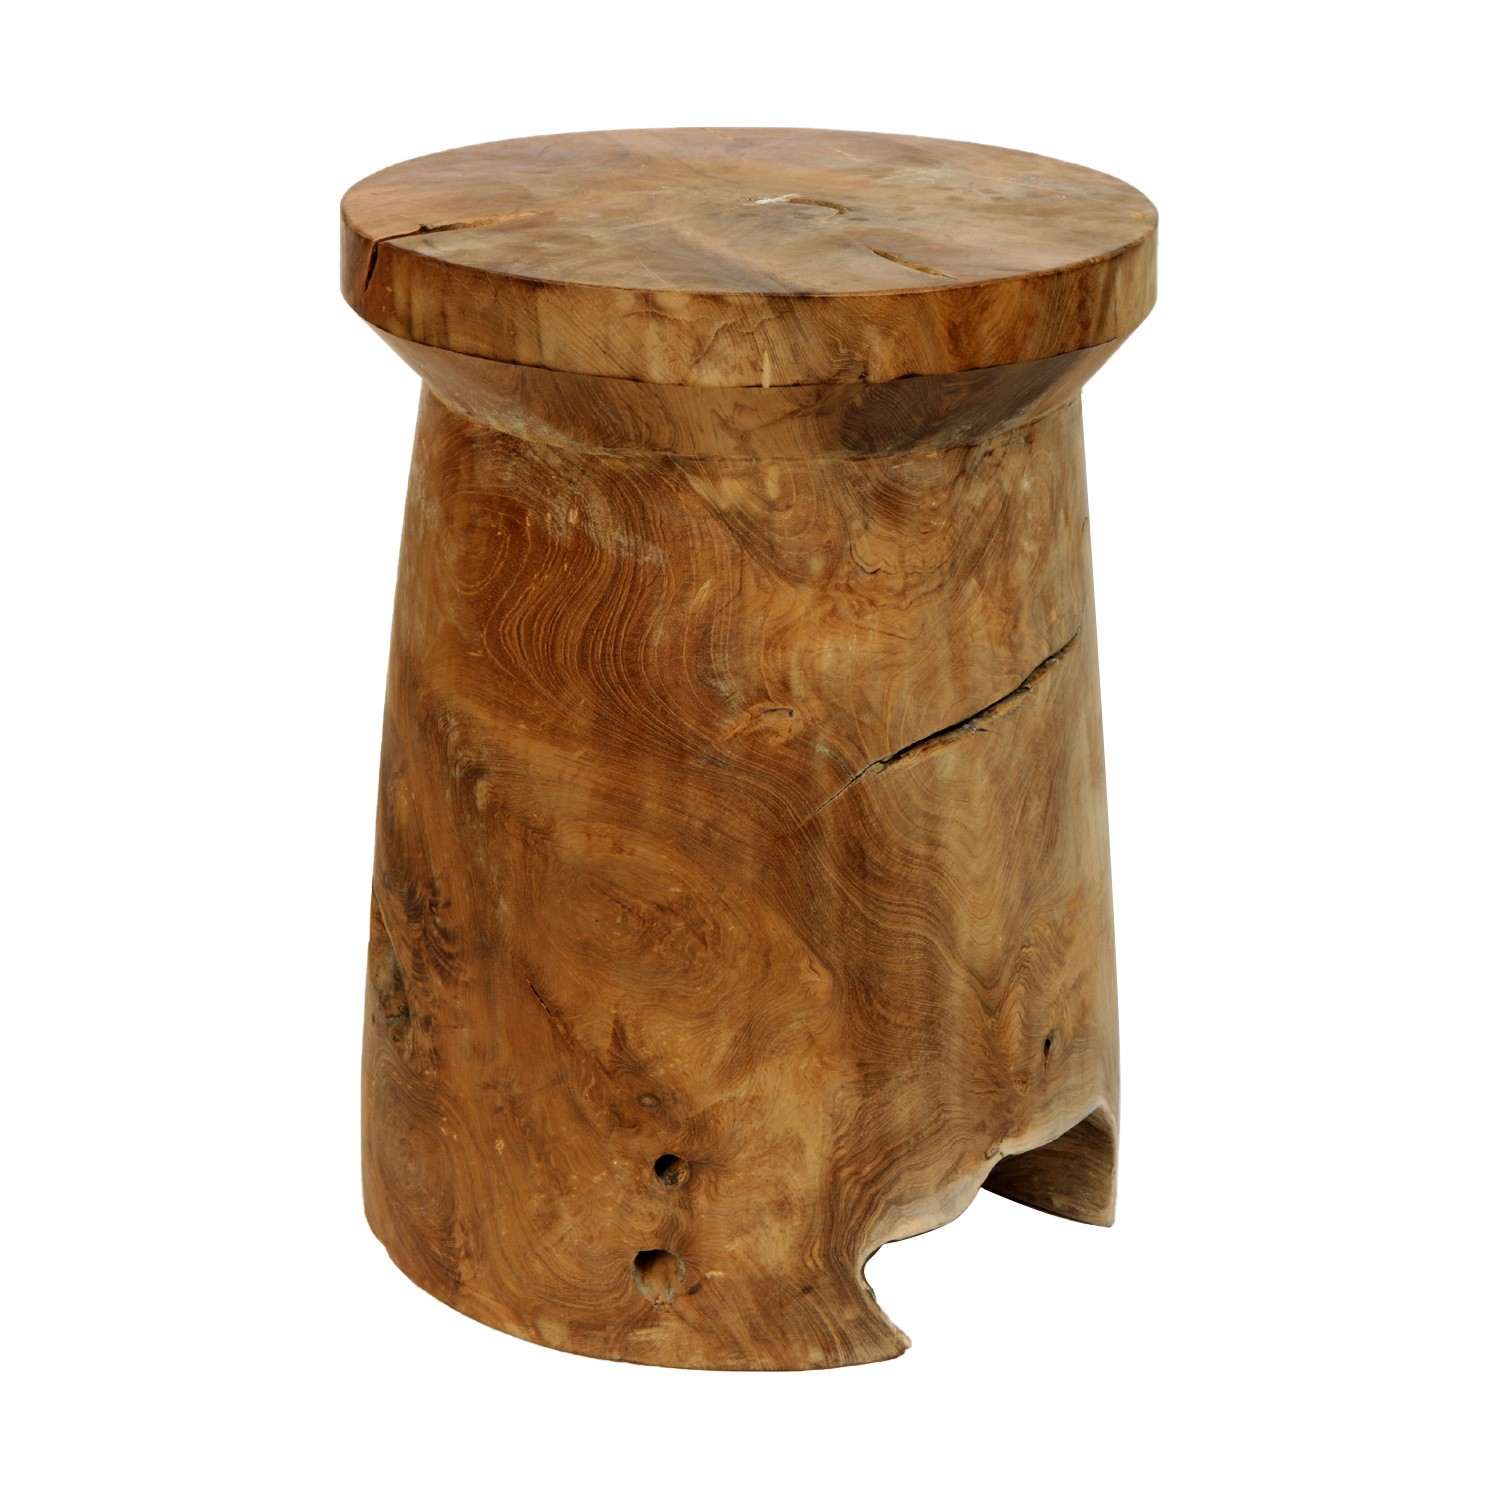 Tropica Woody Commercial Grade Reclaimed Teak Timber Mushroom Stool, Natural